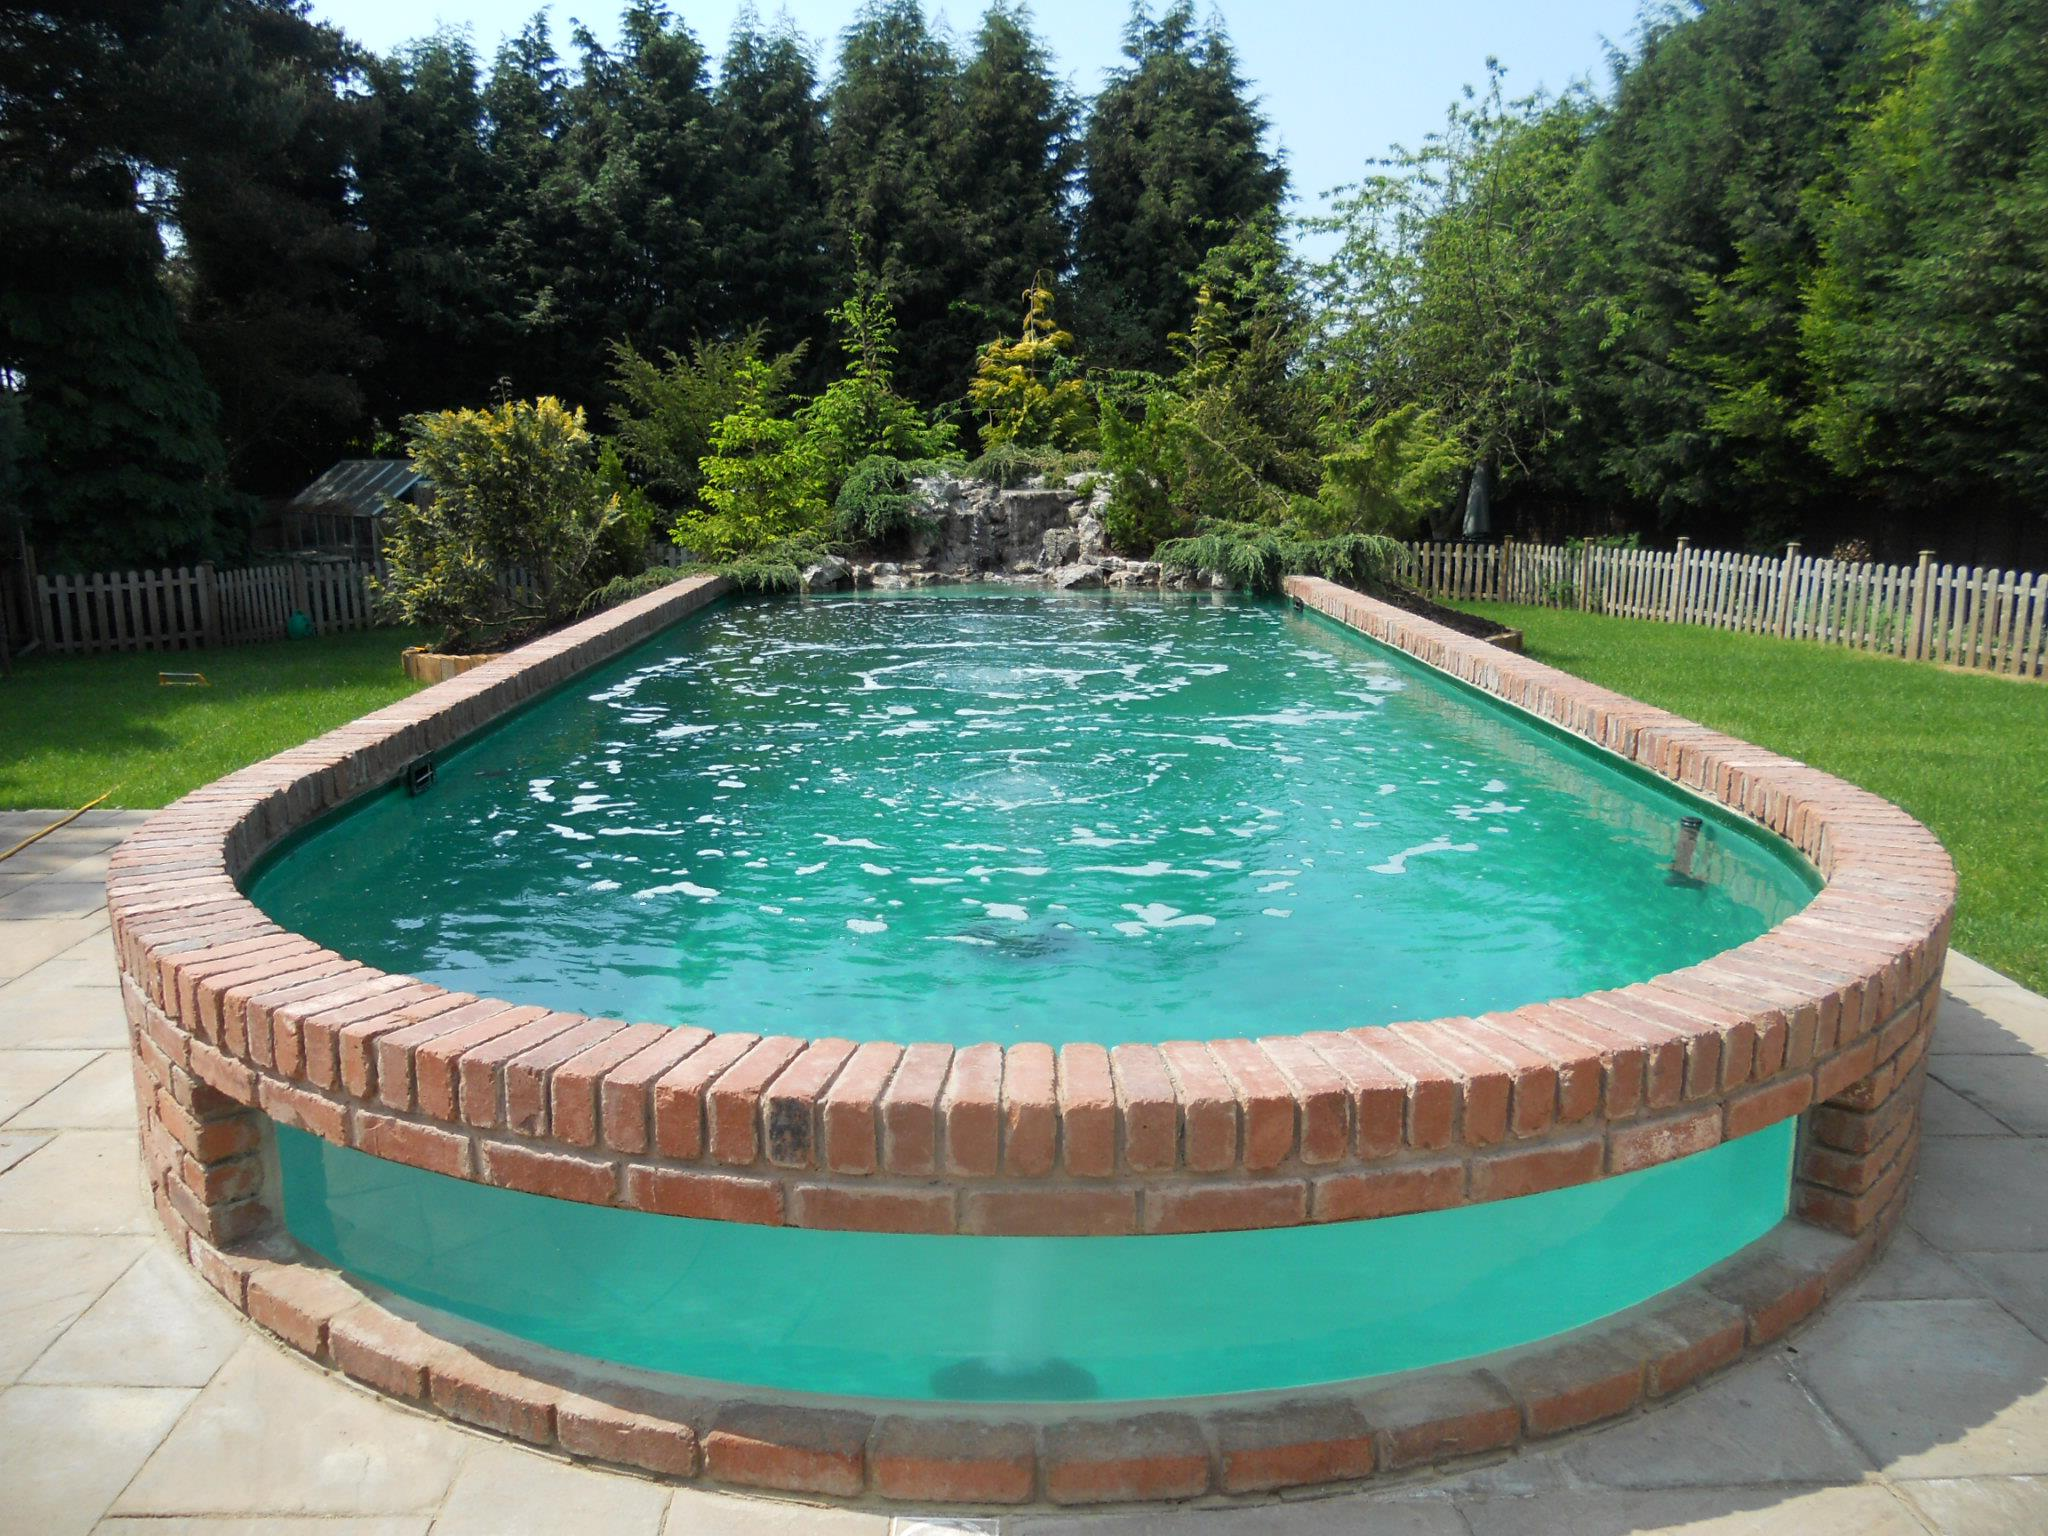 above ground pools that look like in ground above ground pools can come with waterfall features. image source ... RESQXWH